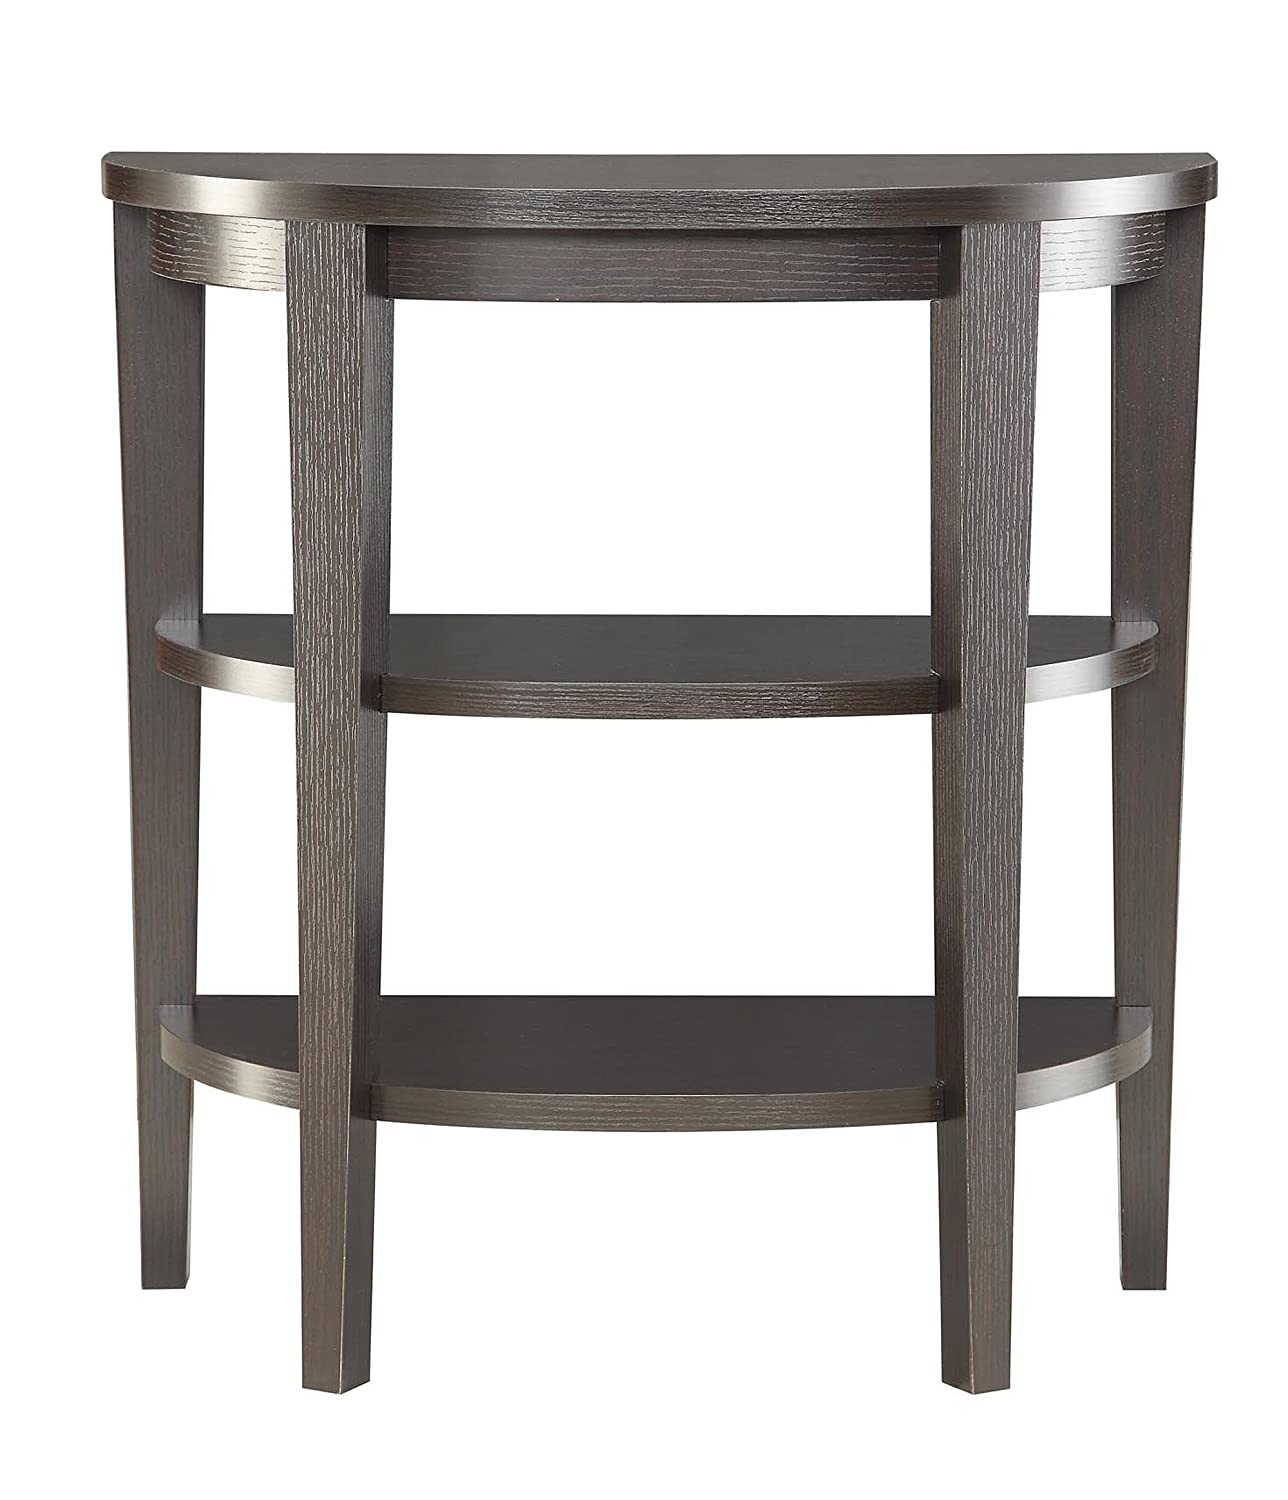 Modern Foyer Console Table : Console table accent modern sofa entryway hallway decor